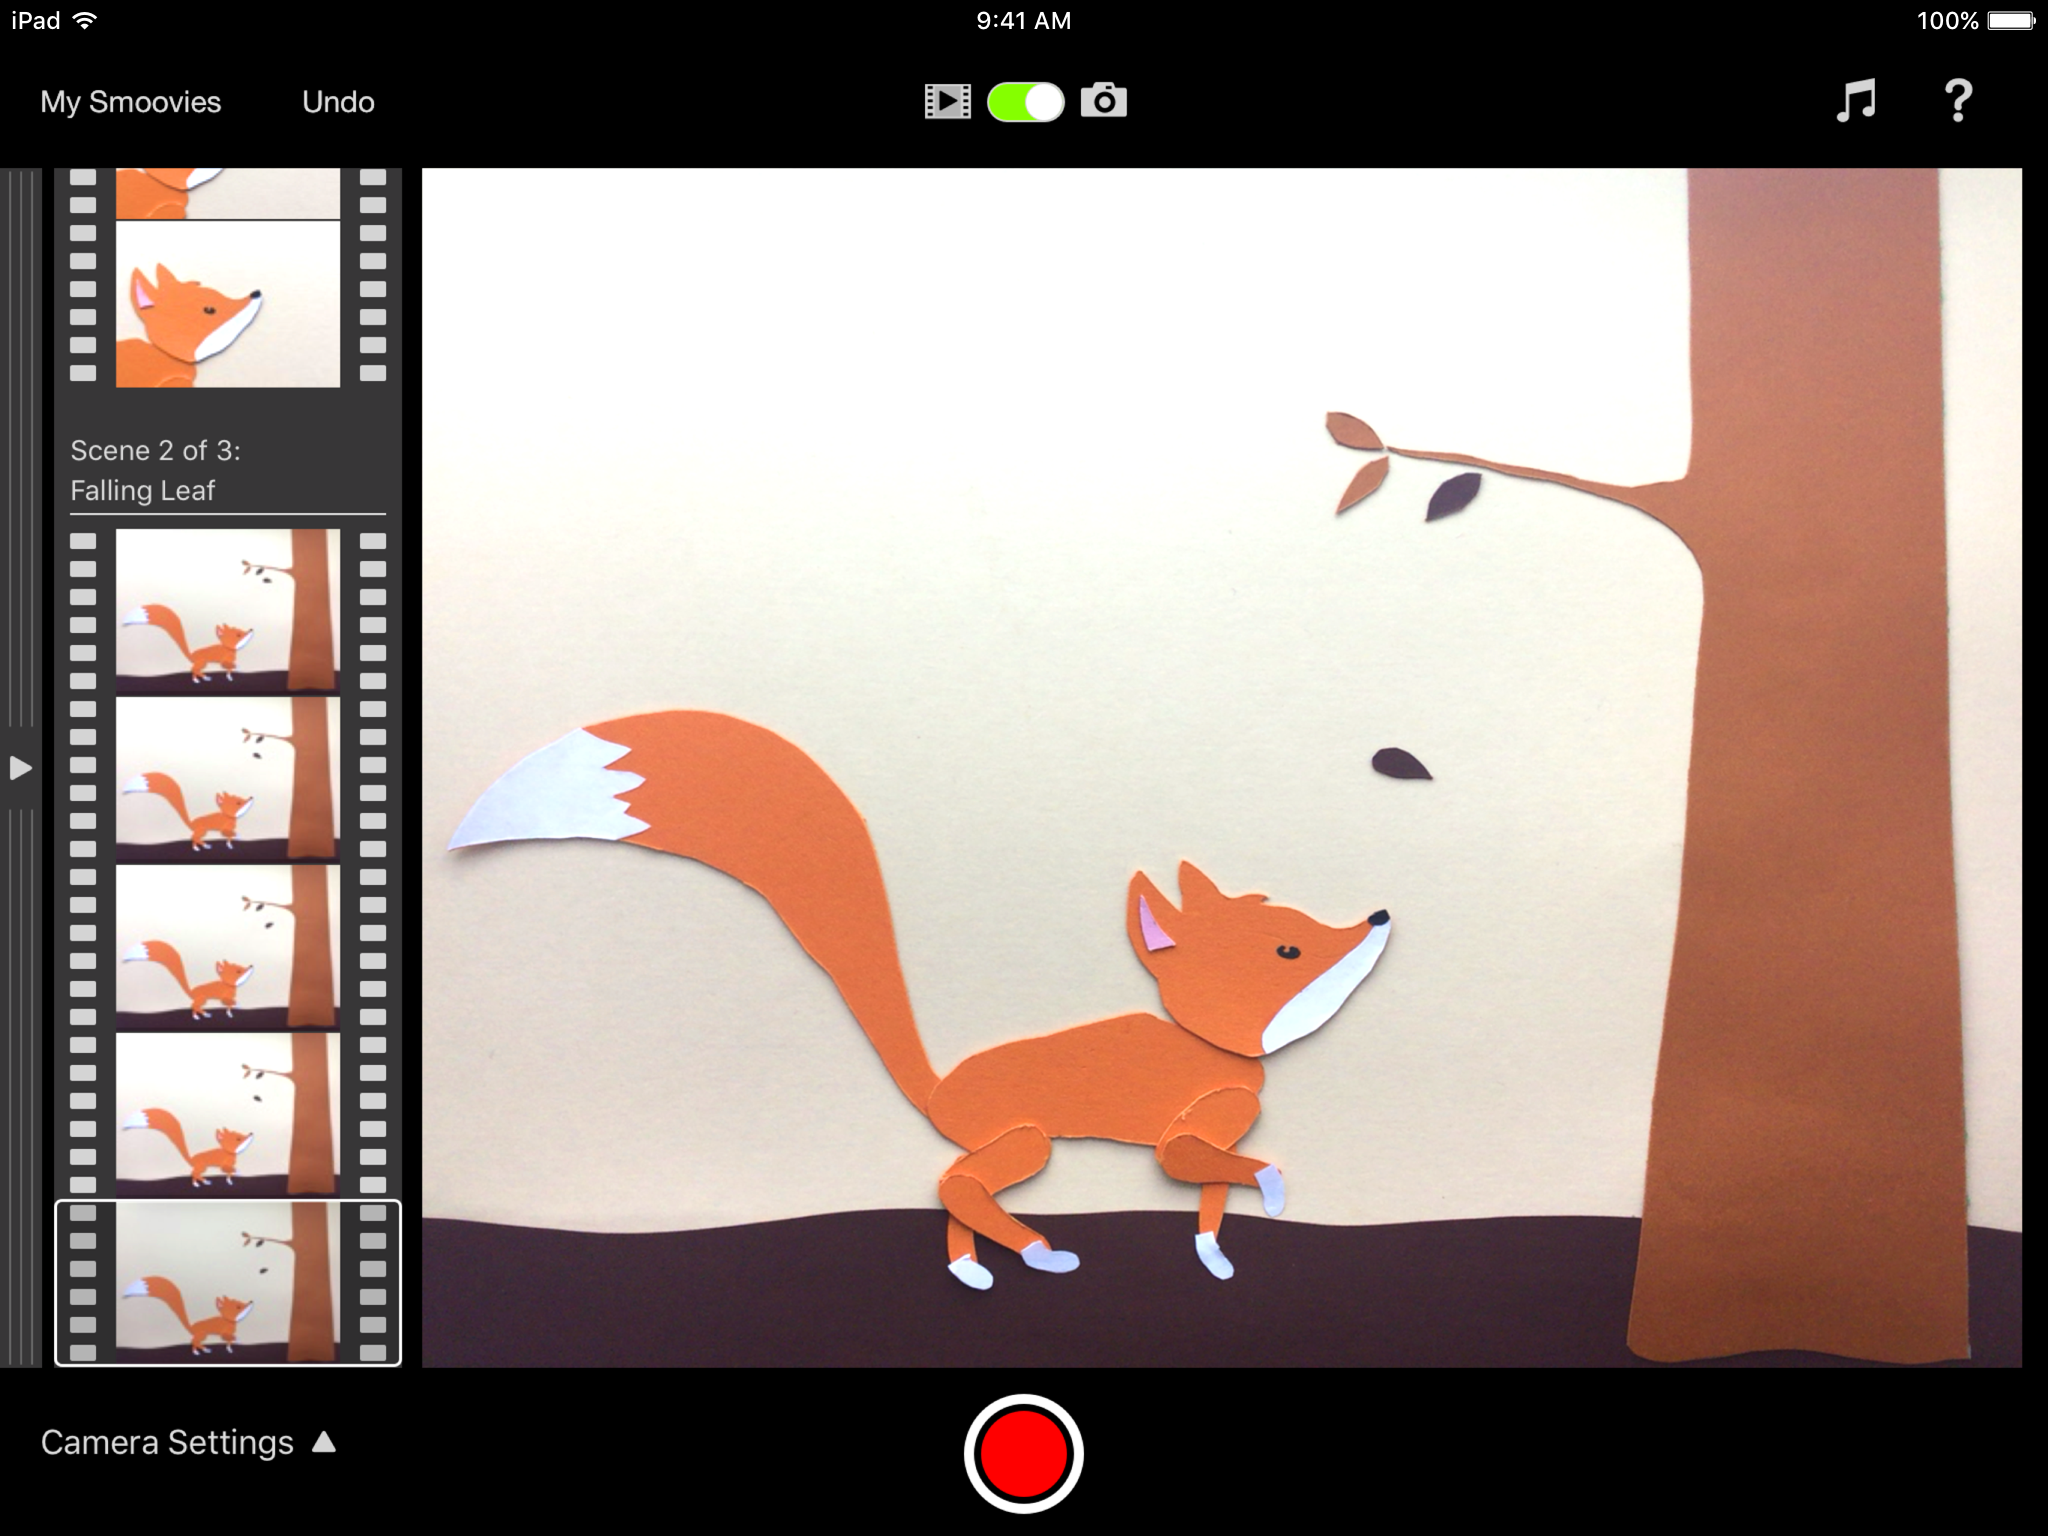 Smoovie for iPad v2.0 - Stop Motion Animation for Education and Home Image